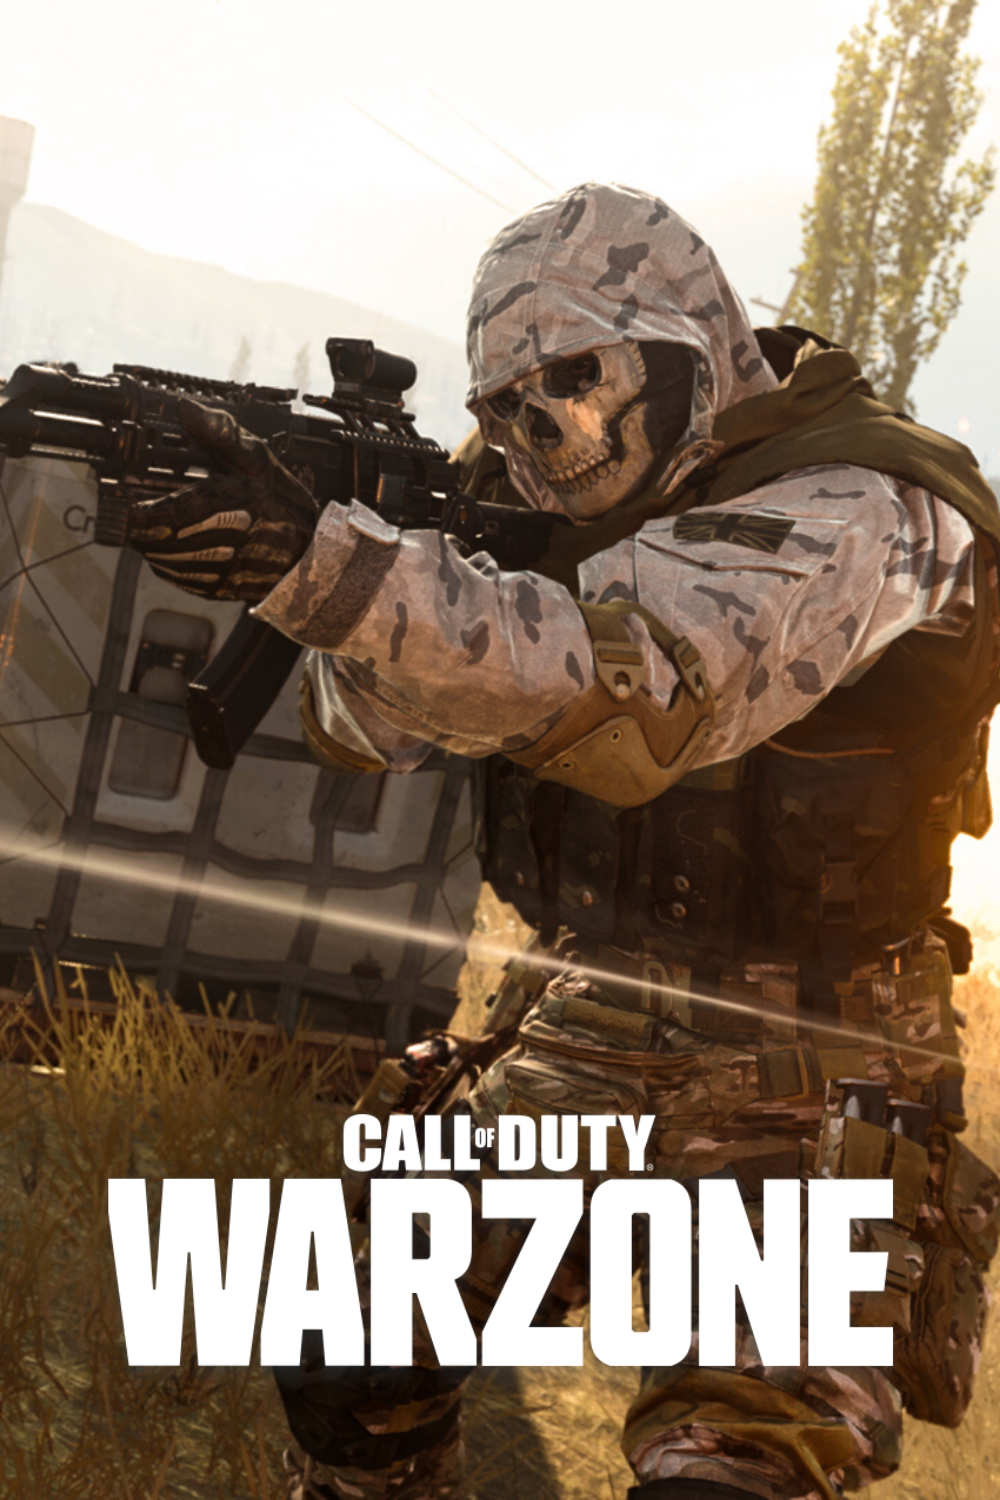 Call Of Duty Warzone Guides News Tips Tricks And More Call Of Duty Ghosts Call Of Duty Call Of Duty Black